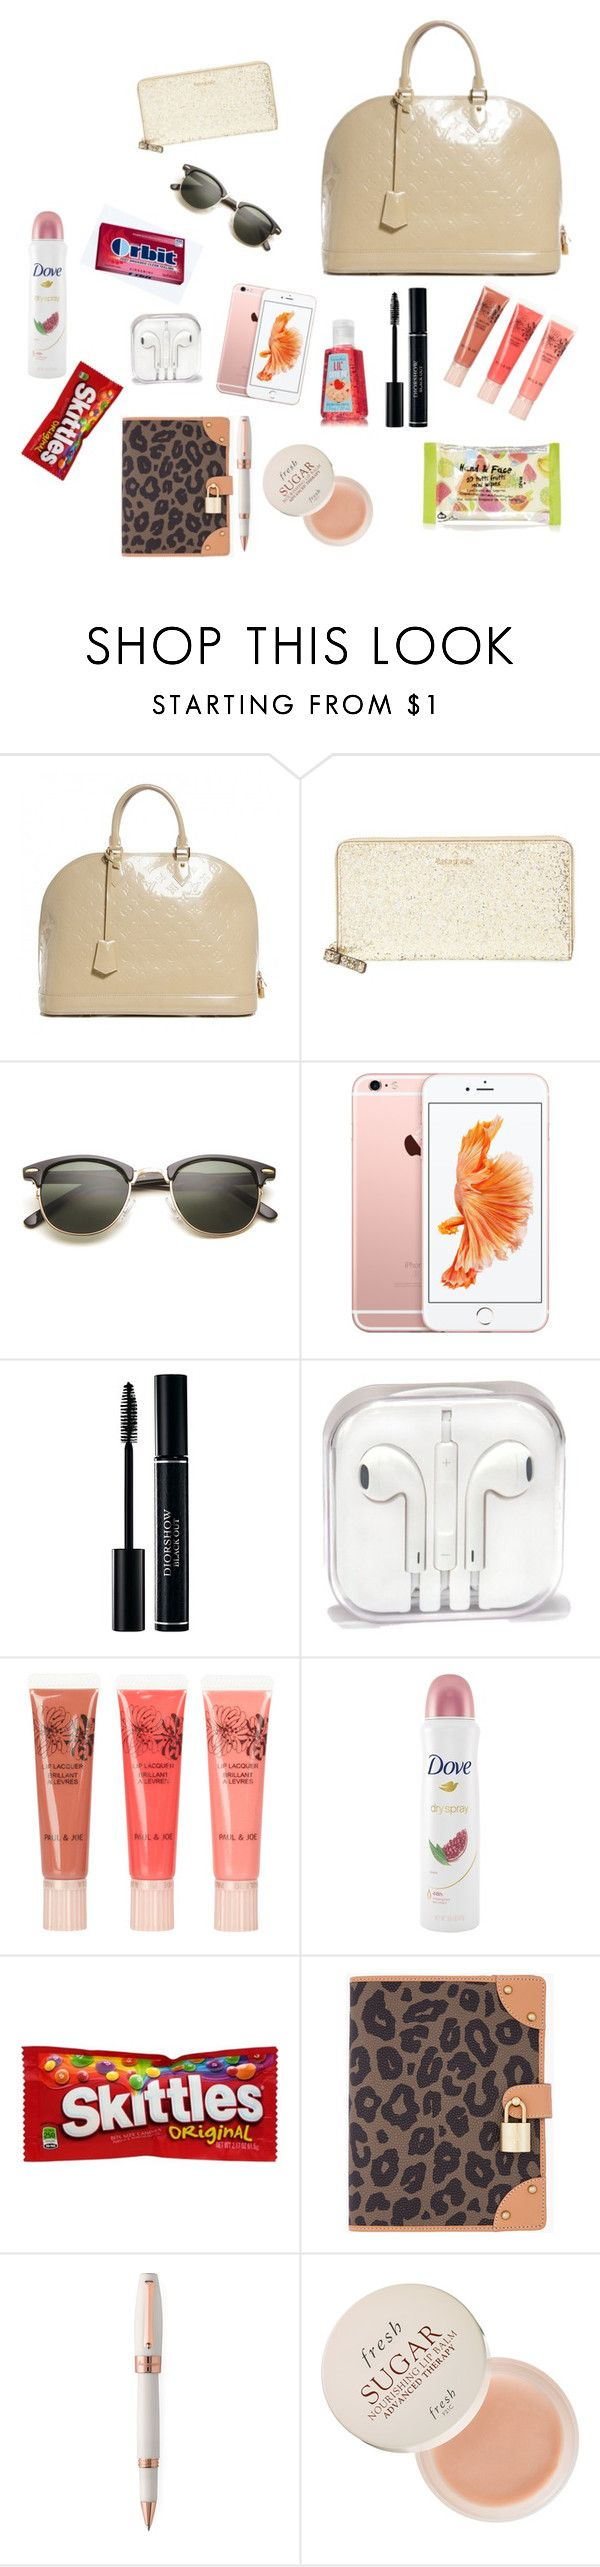 Whats In My Purse!  by polygurl-624 ❤ liked on Polyvore featuring moda, Louis Vuitton, Kate Spade, Paul  Joe, Dove, Mulberry, Montegrappa, Fresh, Topshop e womens clothing